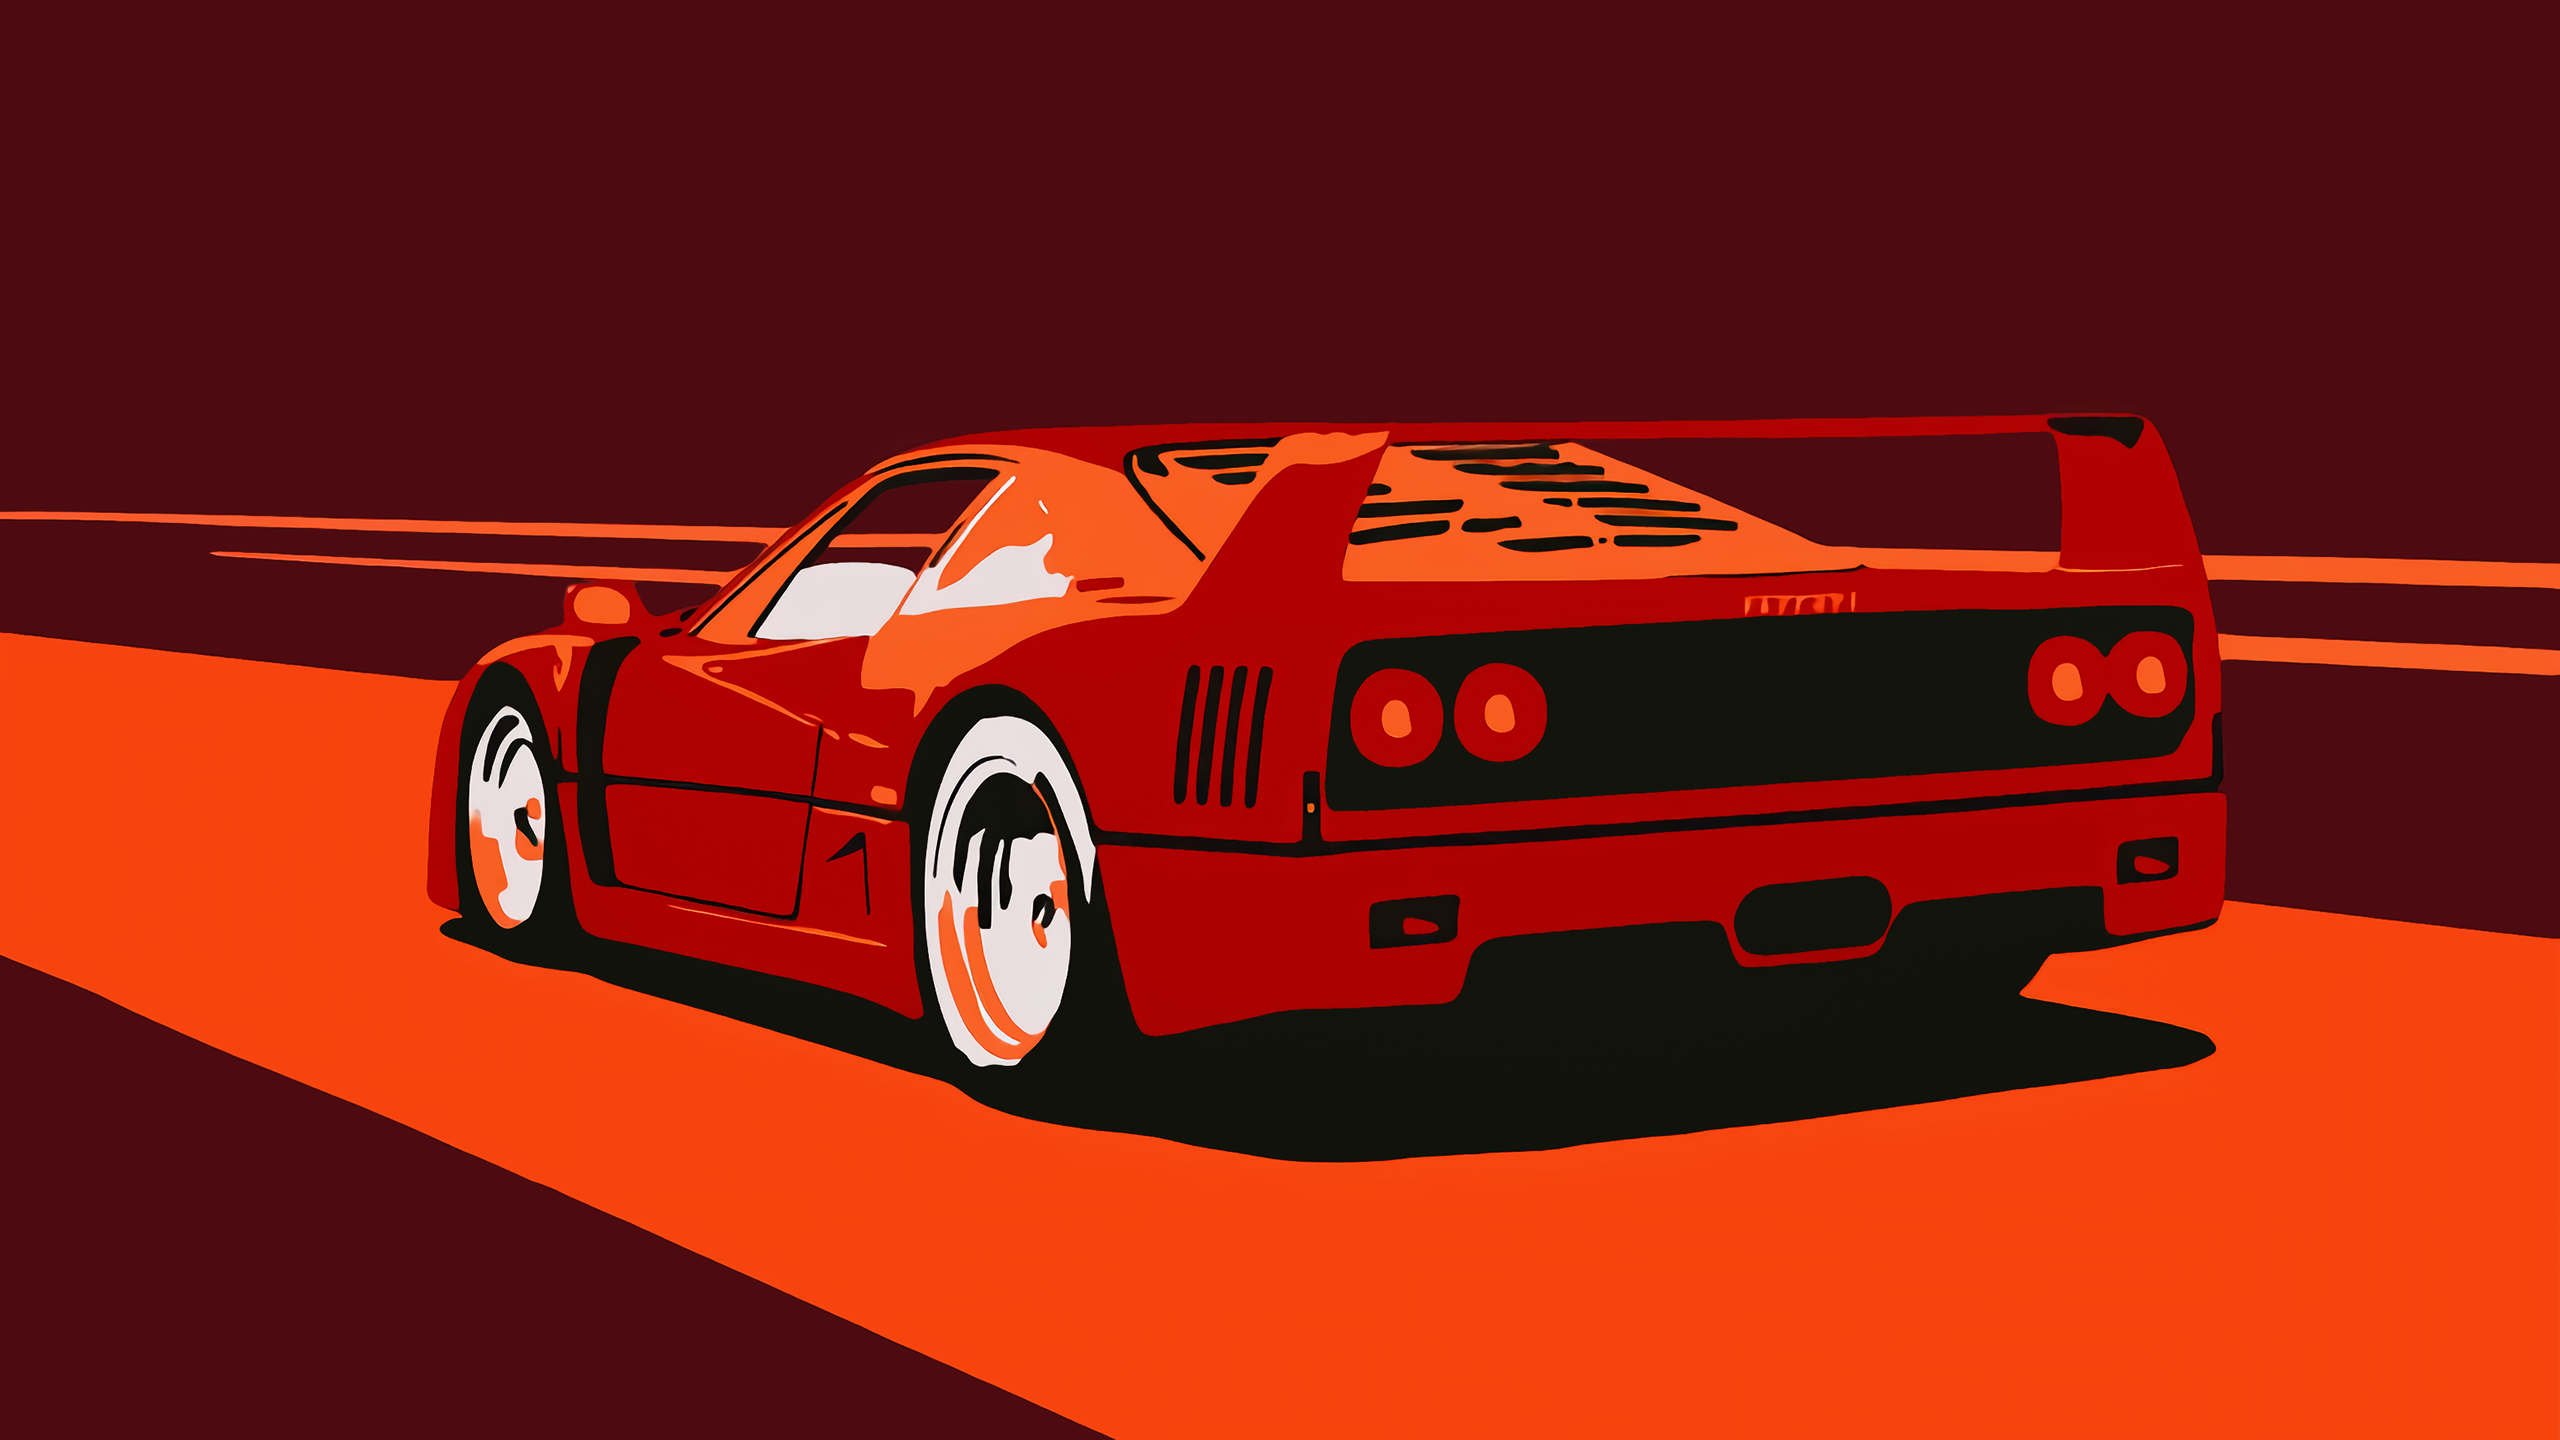 Ferrari 4k Wallpapers For Your Desktop Or Mobile Screen Free And Easy To Download